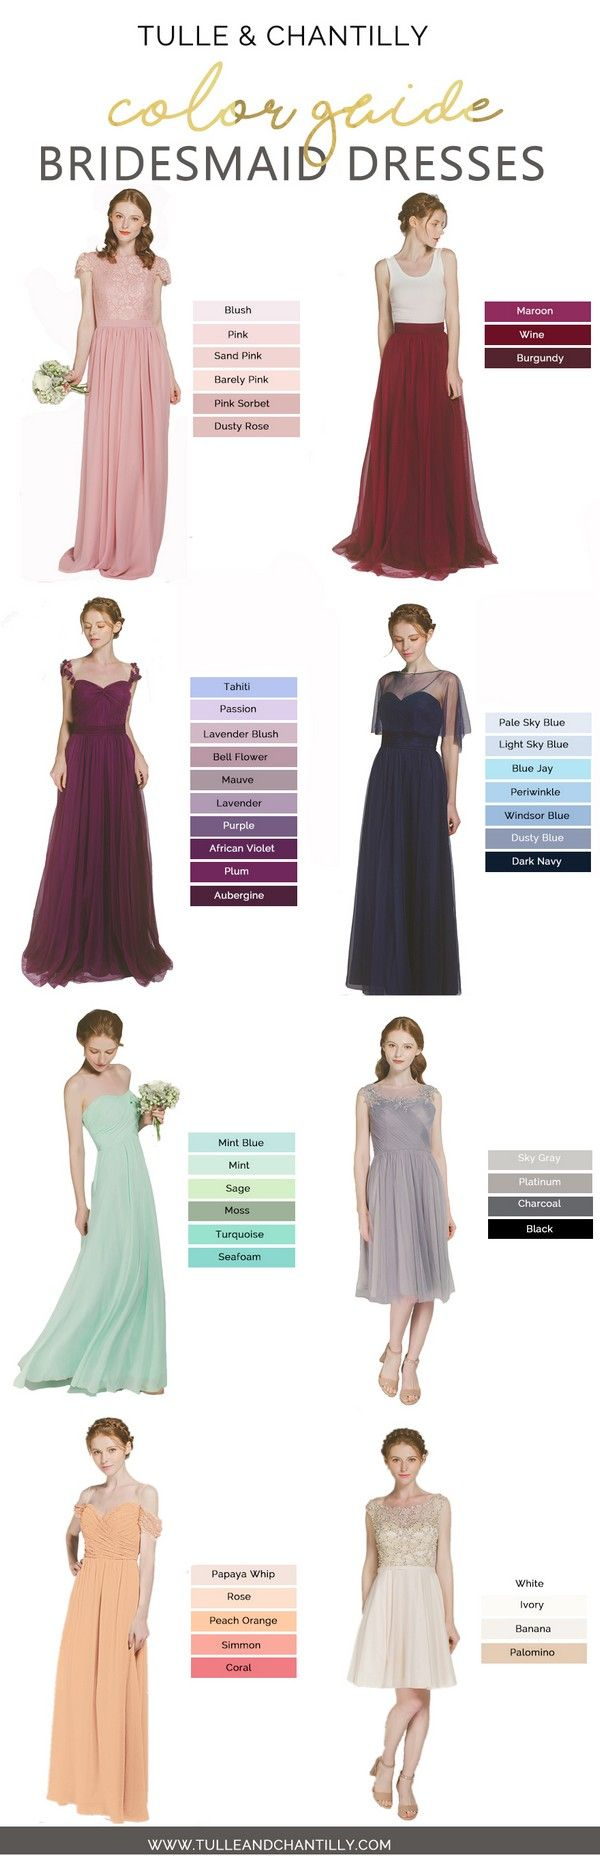 Long short bridesmaid dresses from 89 in size 2 30 and 100 color bridesmaid dress colors from tulle and chantilly ombrellifo Images